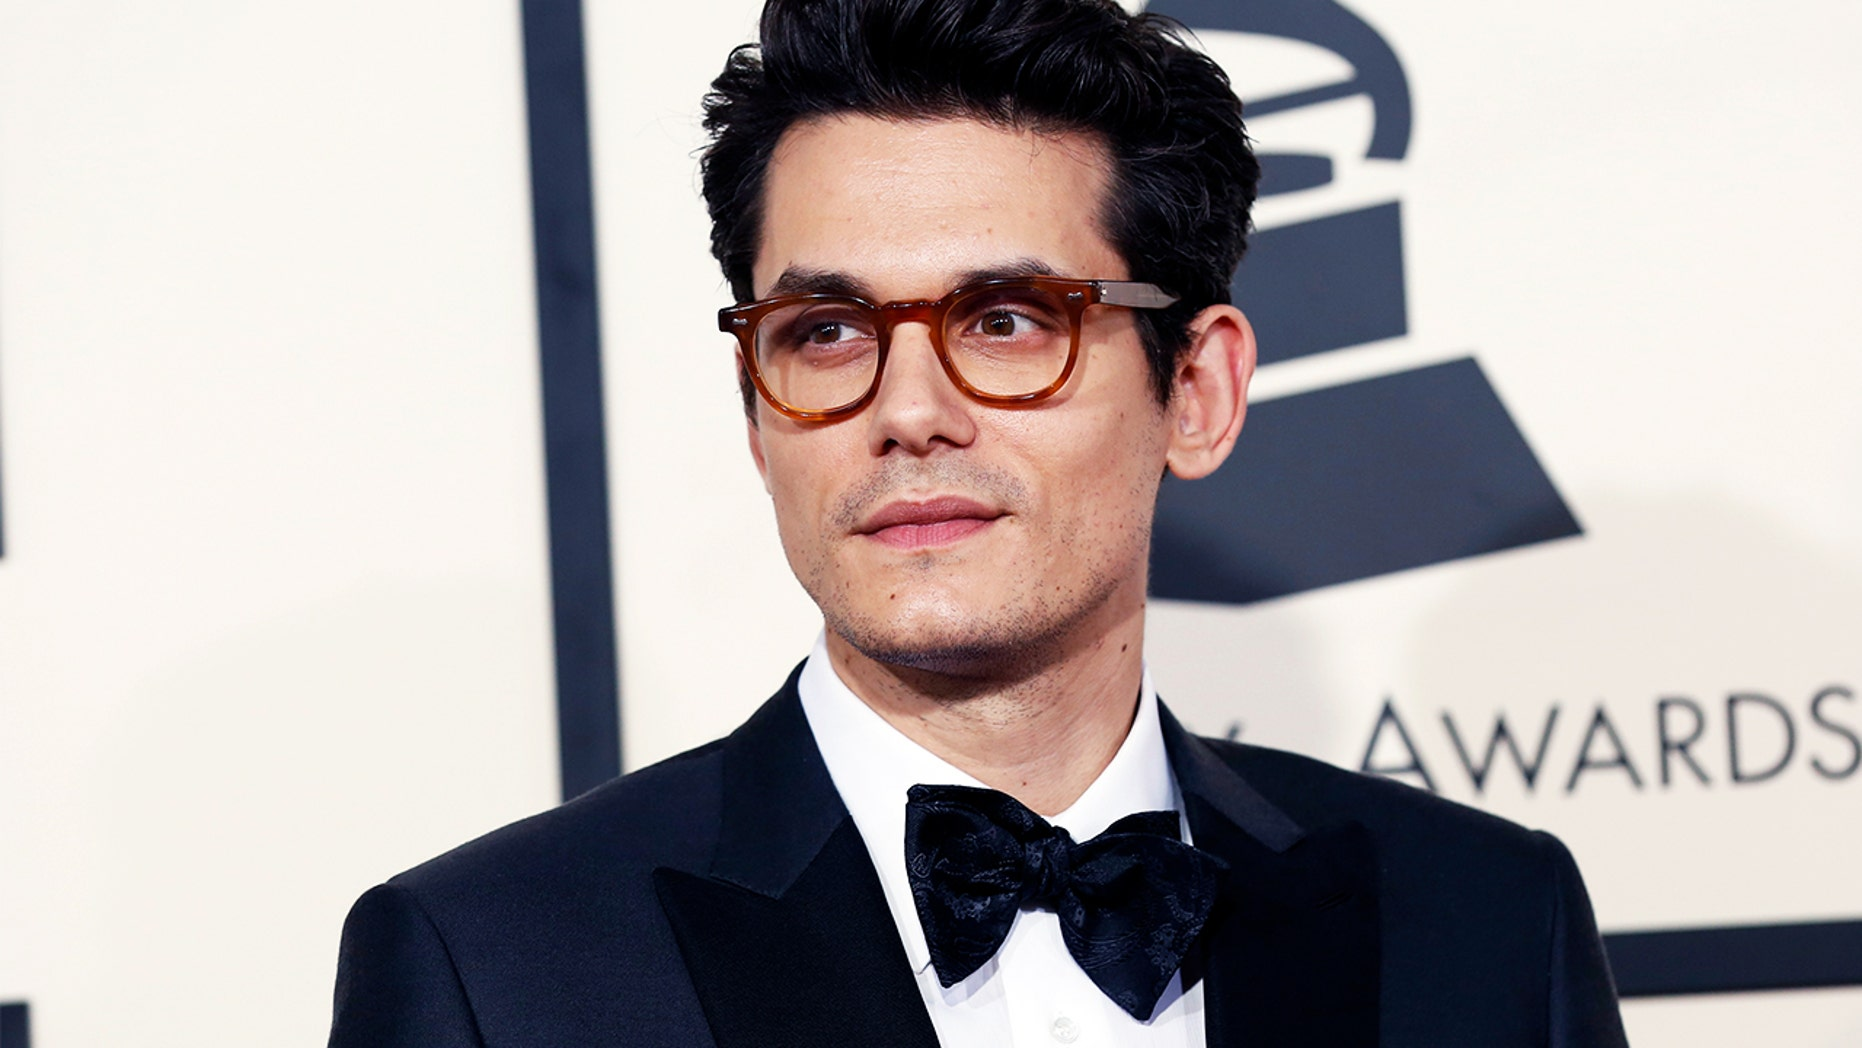 Musician John Mayer launches foundation designed to help veterans suffering from post-traumatic stress disorder and the emerging needs of women veterans.